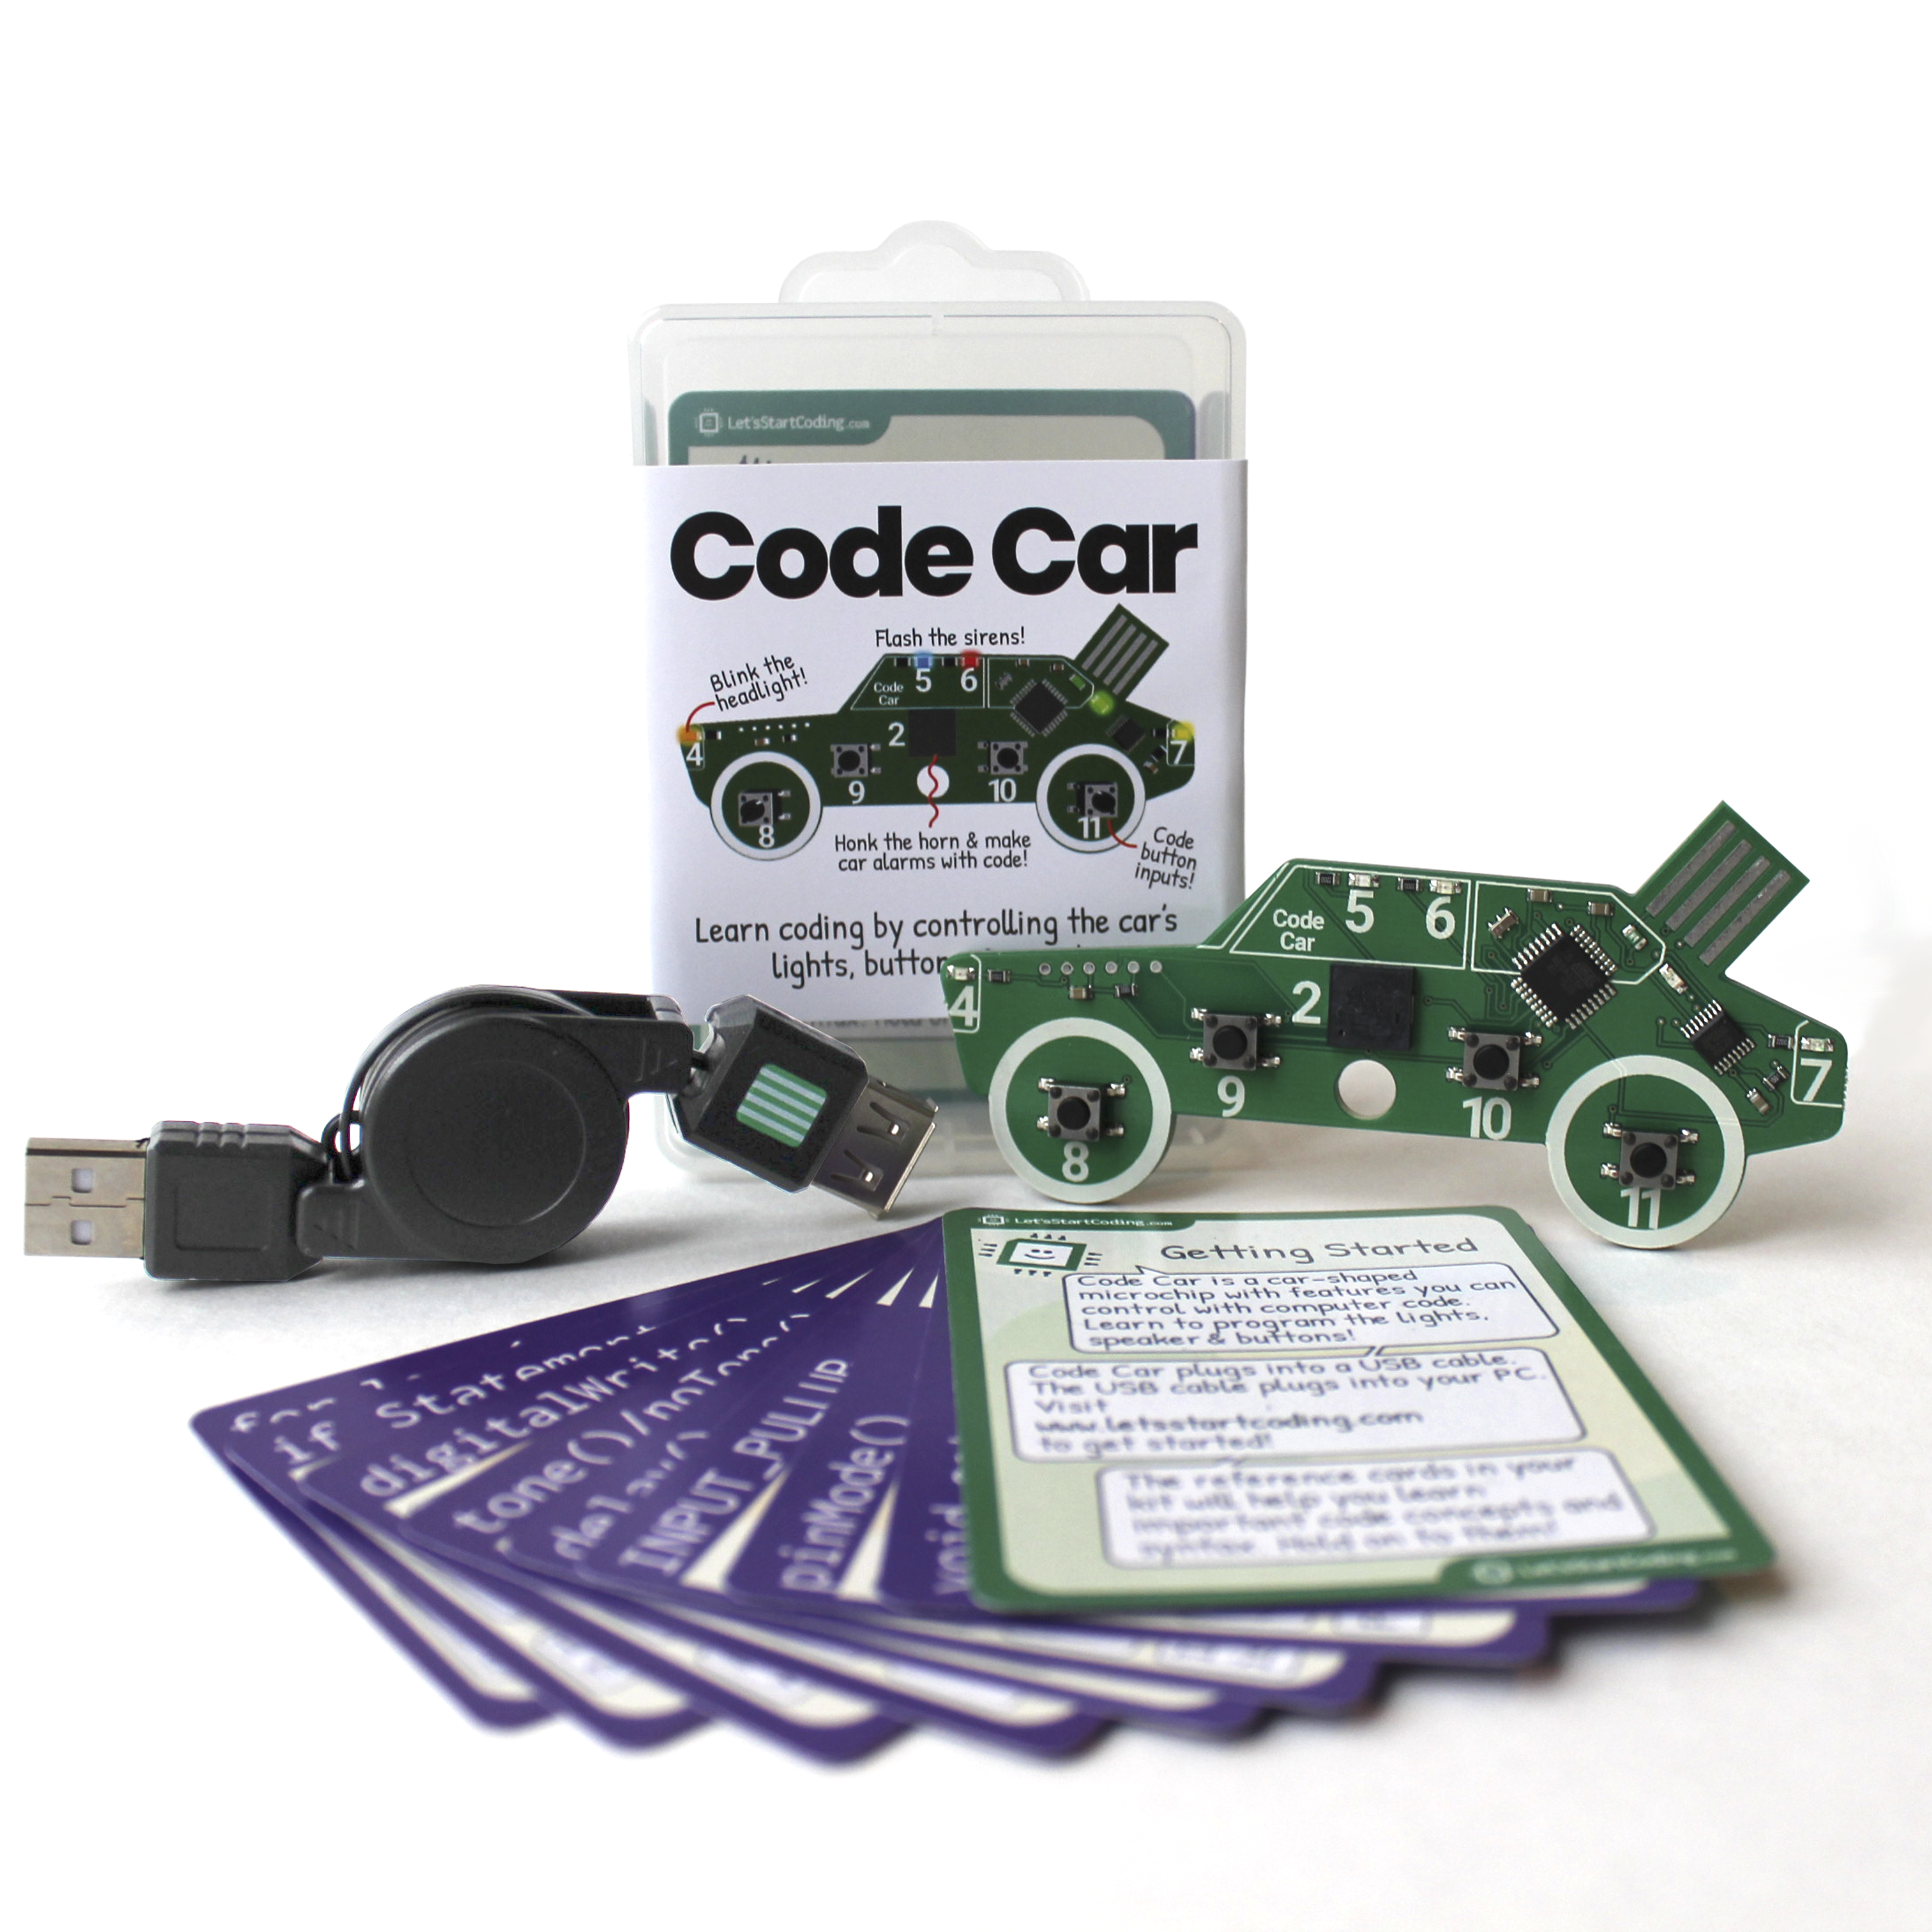 Car-with-USB-and-Cards-Standing-Up.png